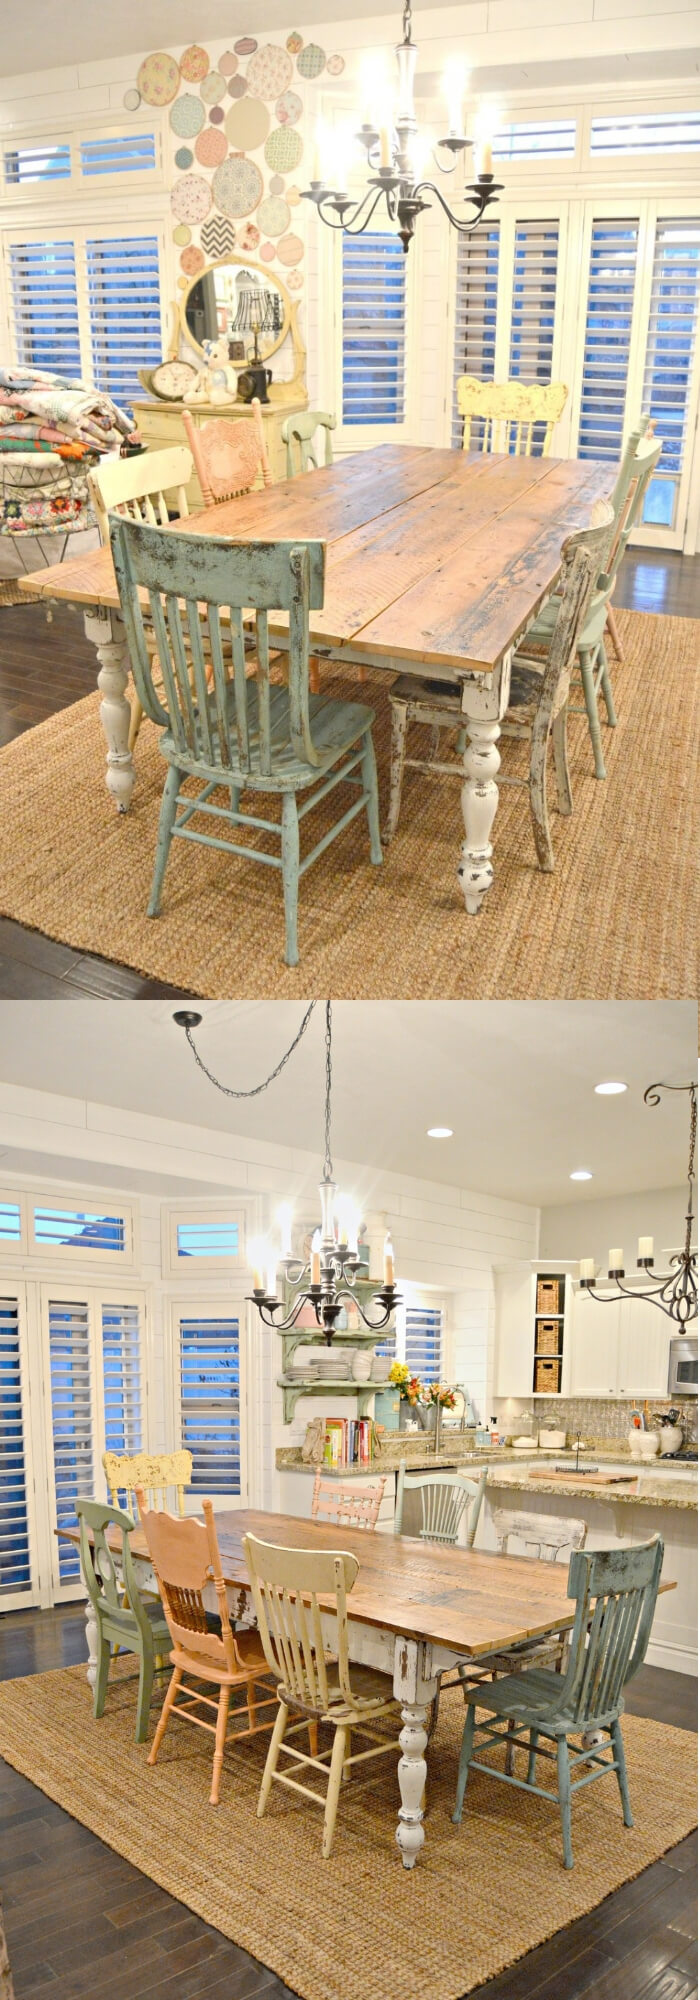 28+ Stunning Farmhouse Dining Room Decor & Design Ideas ...